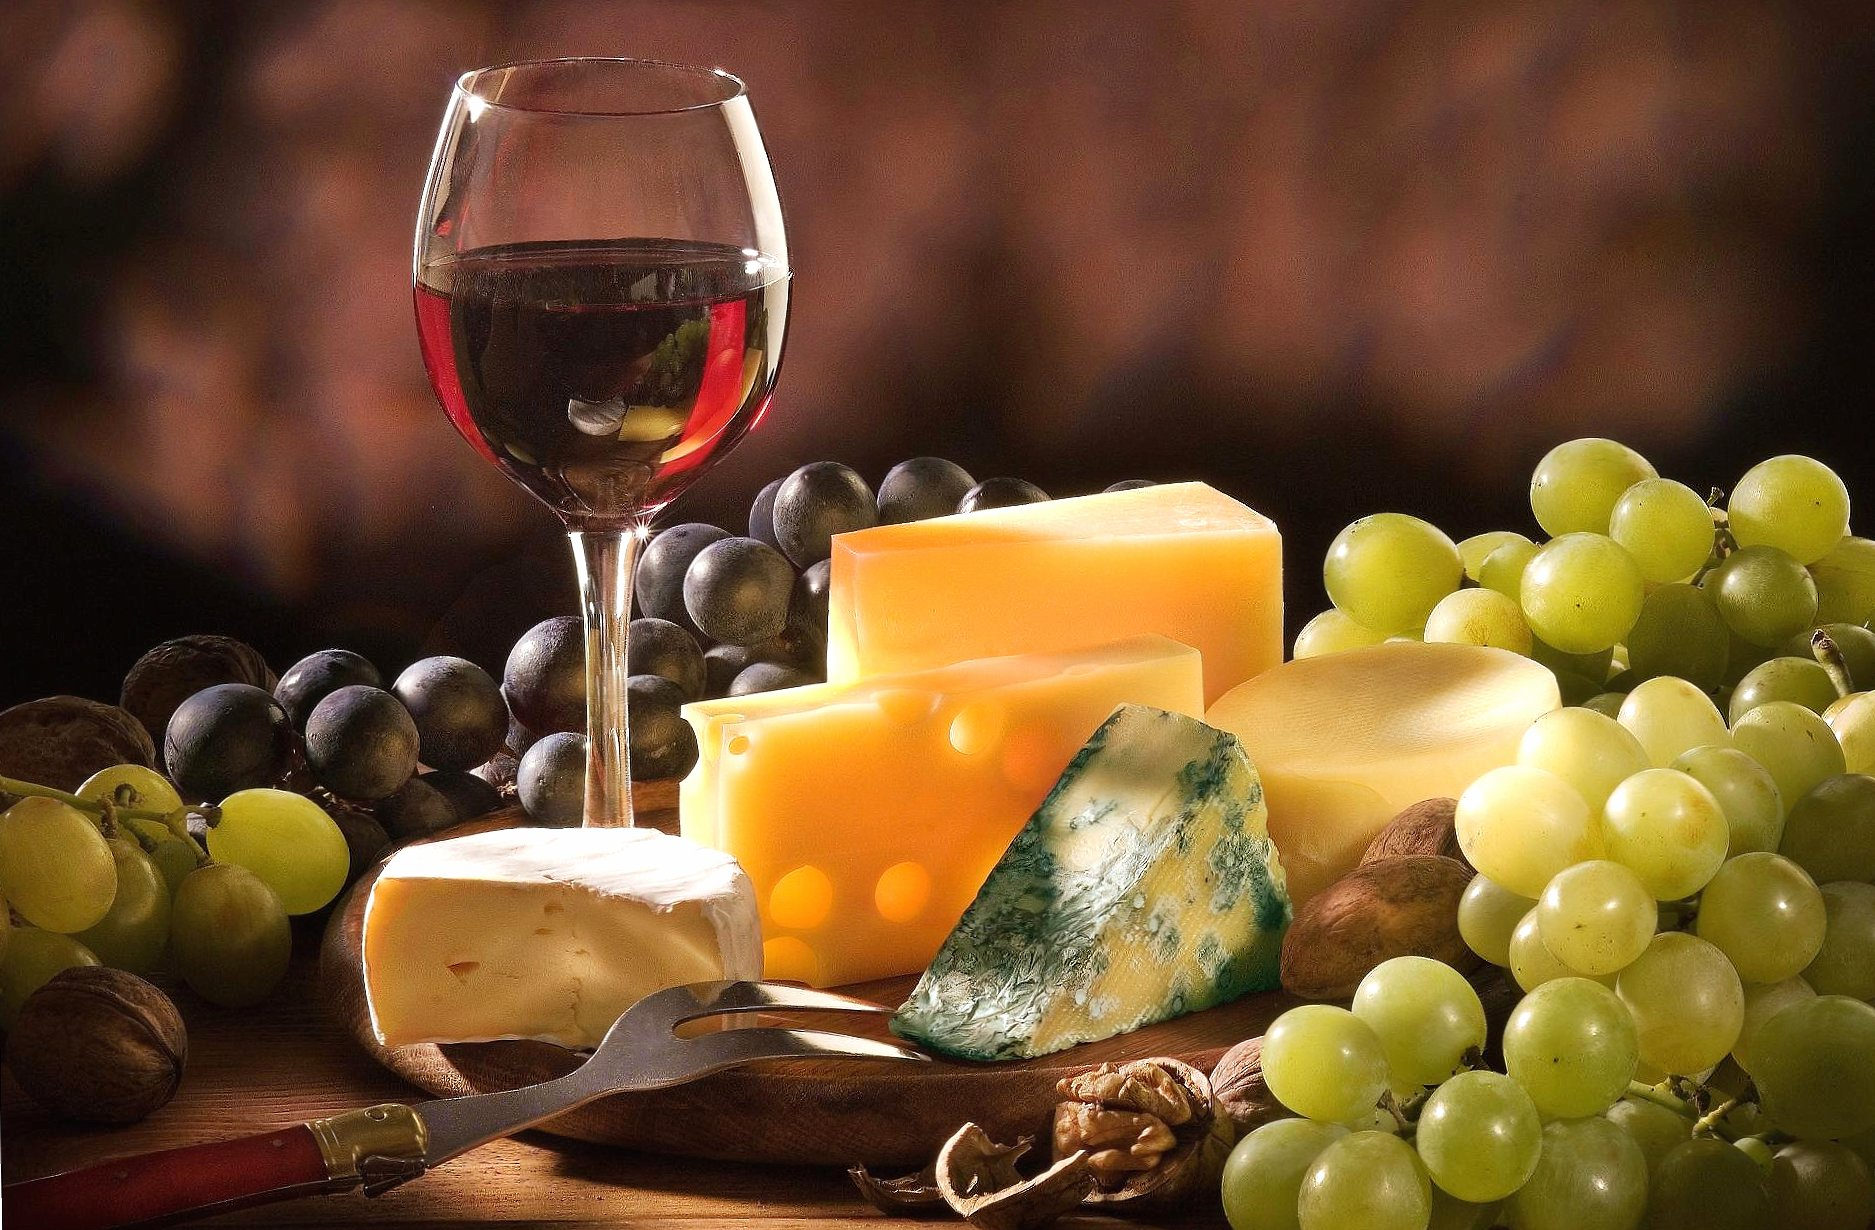 Cheese wine and grapes wallpapers HD quality